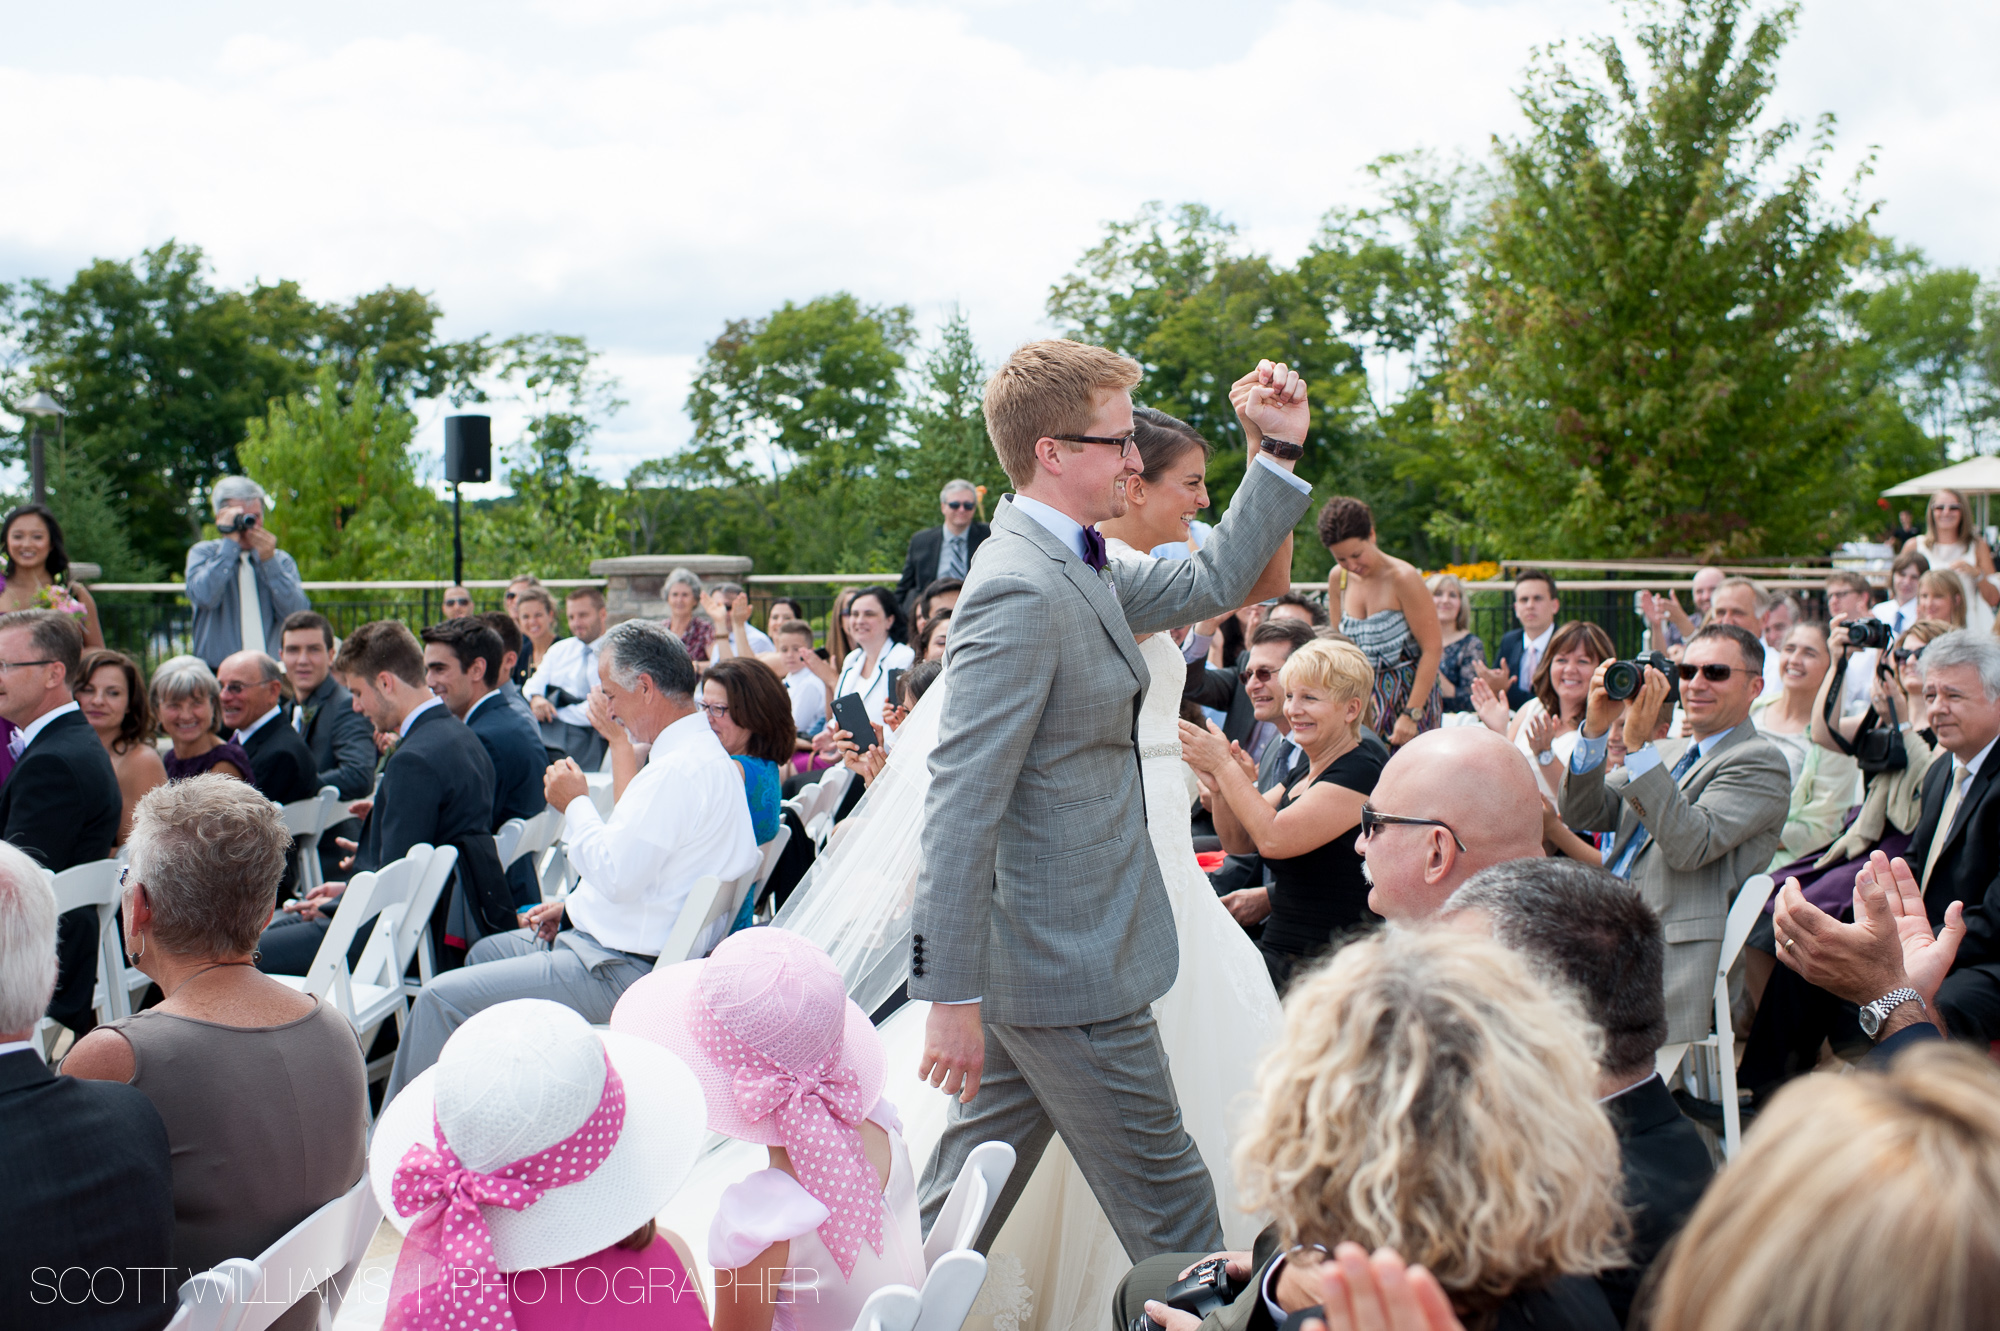 muskoka-wedding-photograph-012.jpg